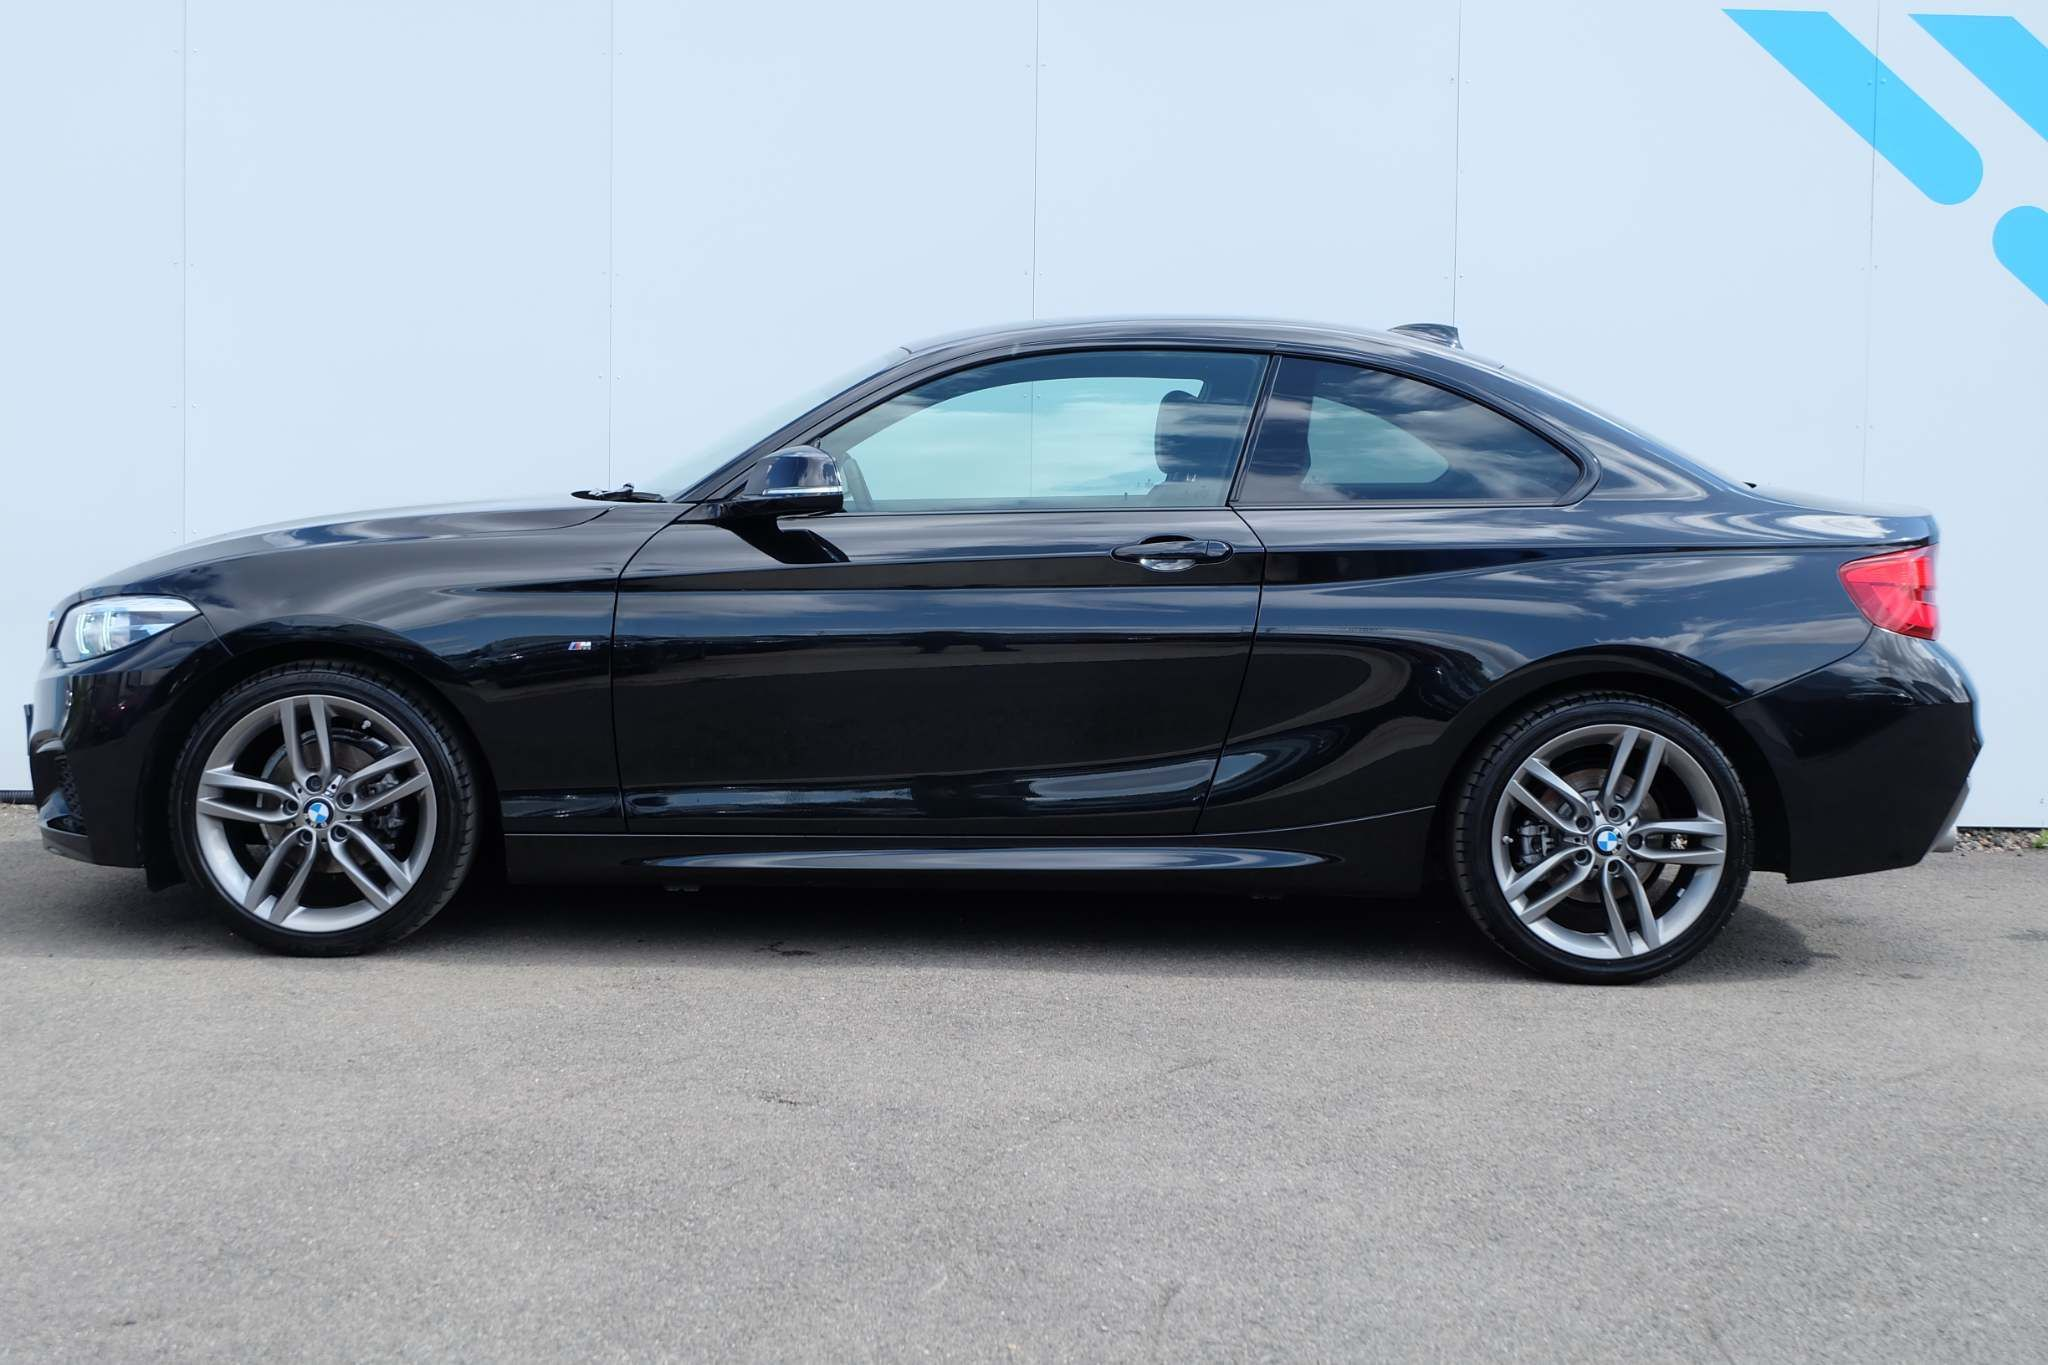 Used BMW 2 Series 1.5 218i Gpf M Sport (s/s) 2dr